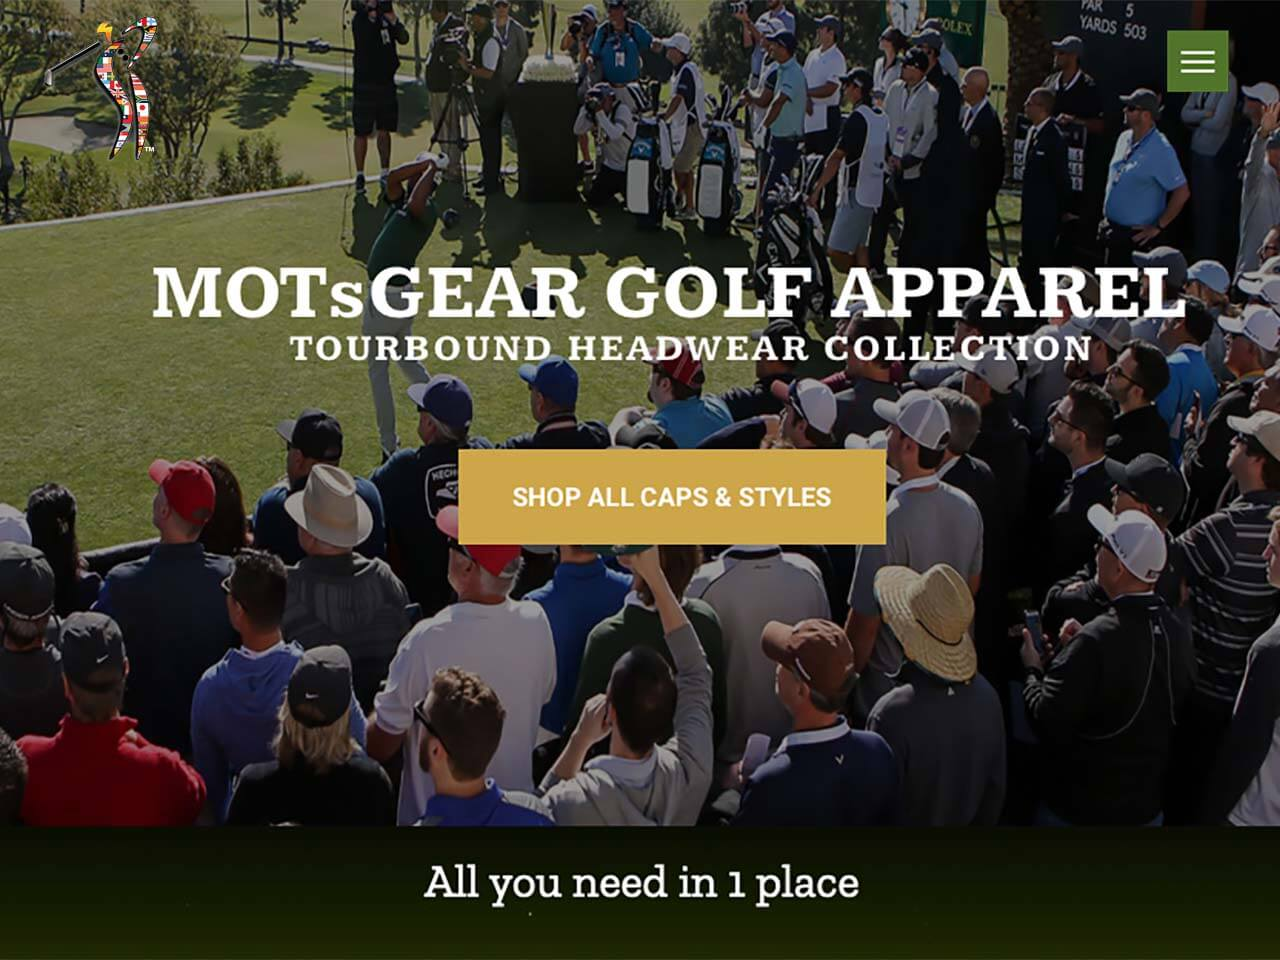 MOTsGEAR Golf Apparel